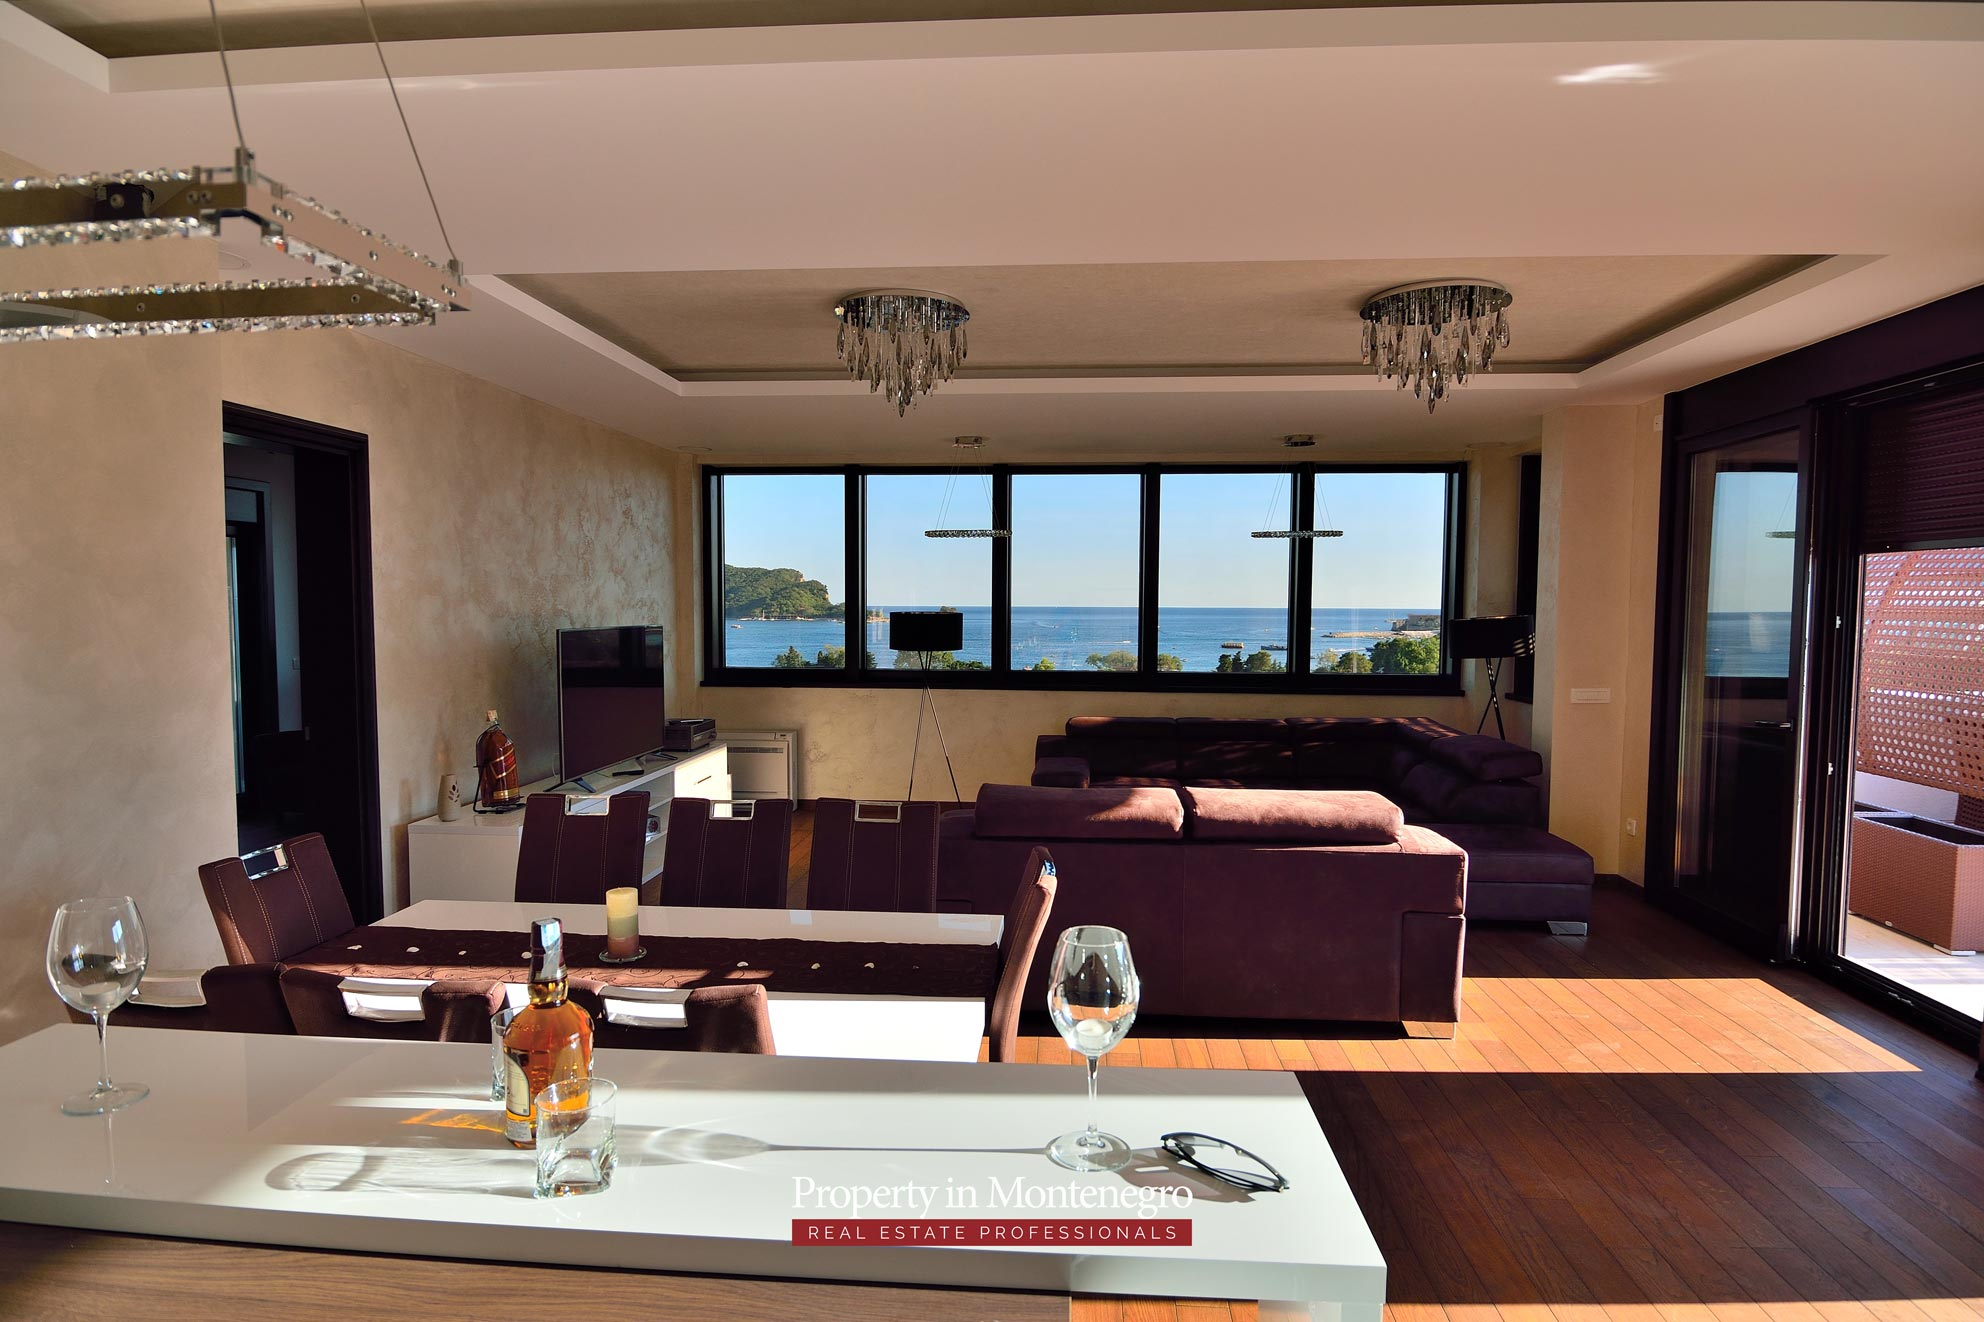 luxury-penthouse-with-panoramic-view-and-swimming-pool-for-sale-in-Budva-Montenegro (3).jpg